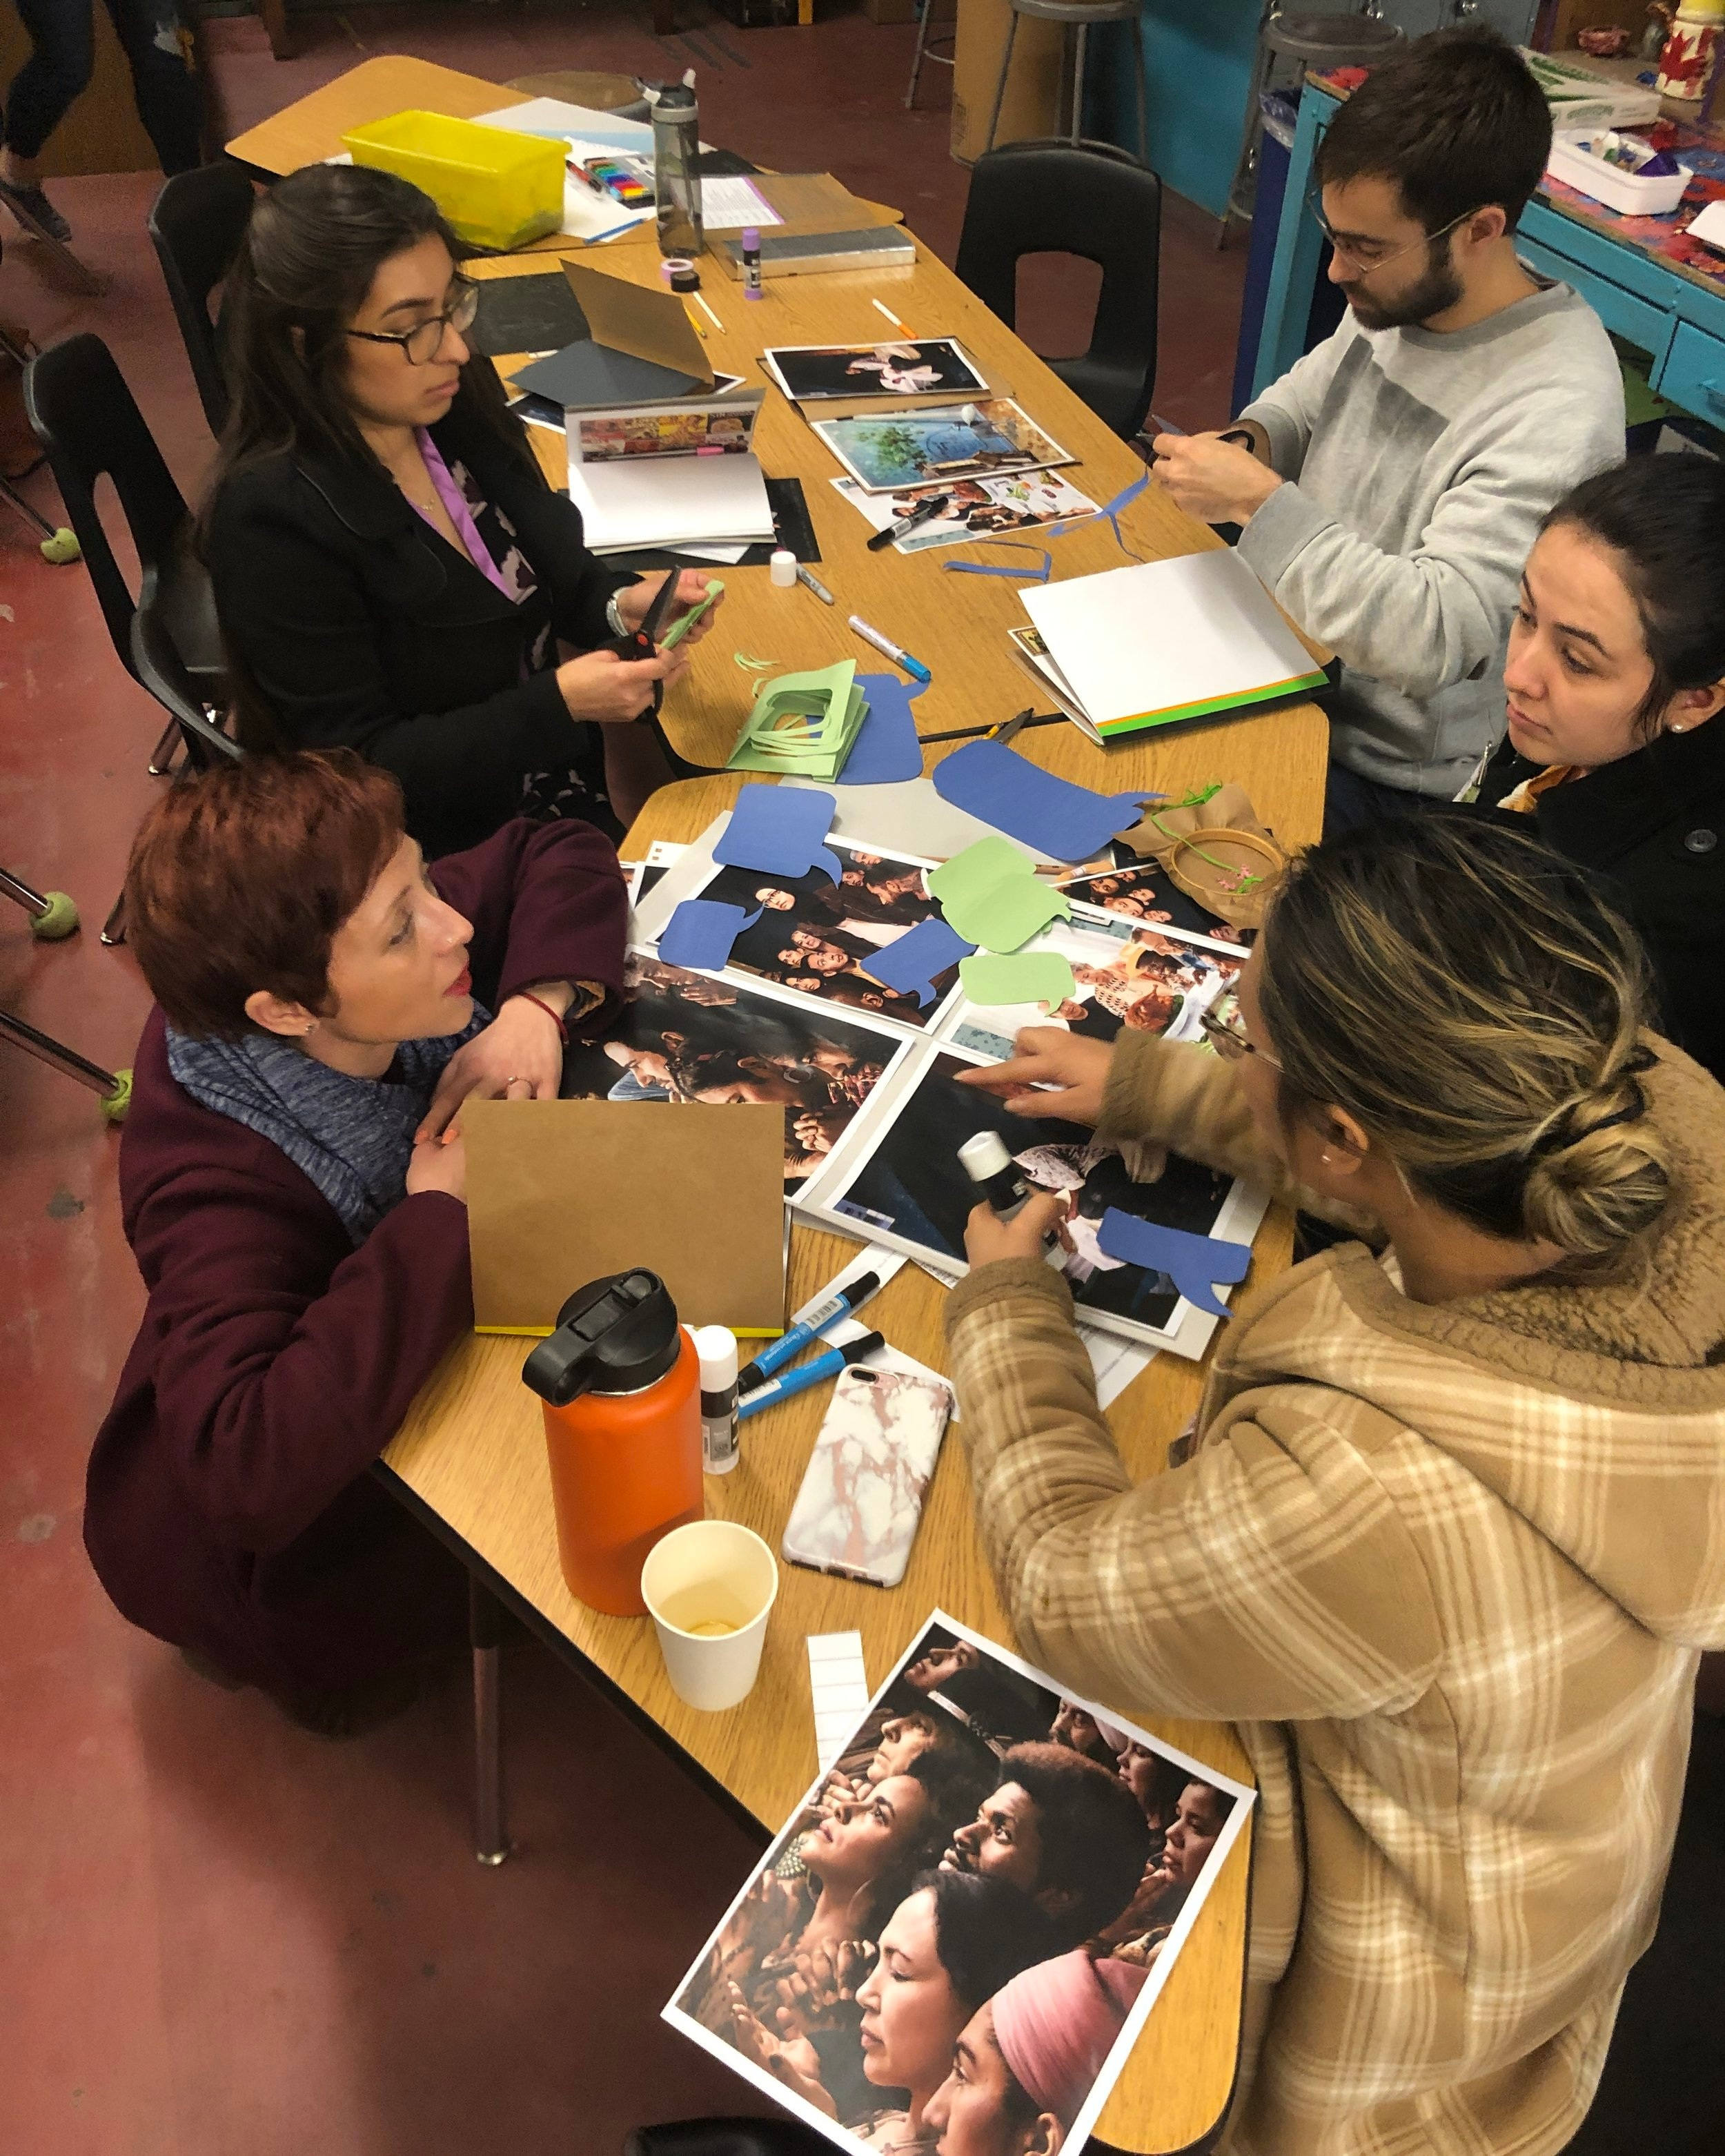 Making connections with FDR's Four Freedoms speech, Norman Rockwell's artwork and the contemporary counter narrative from Hank Willis Thomas and the For Freedoms Project. Teachers ask: What is the architecture of freedom in our classrooms and teaching practice?